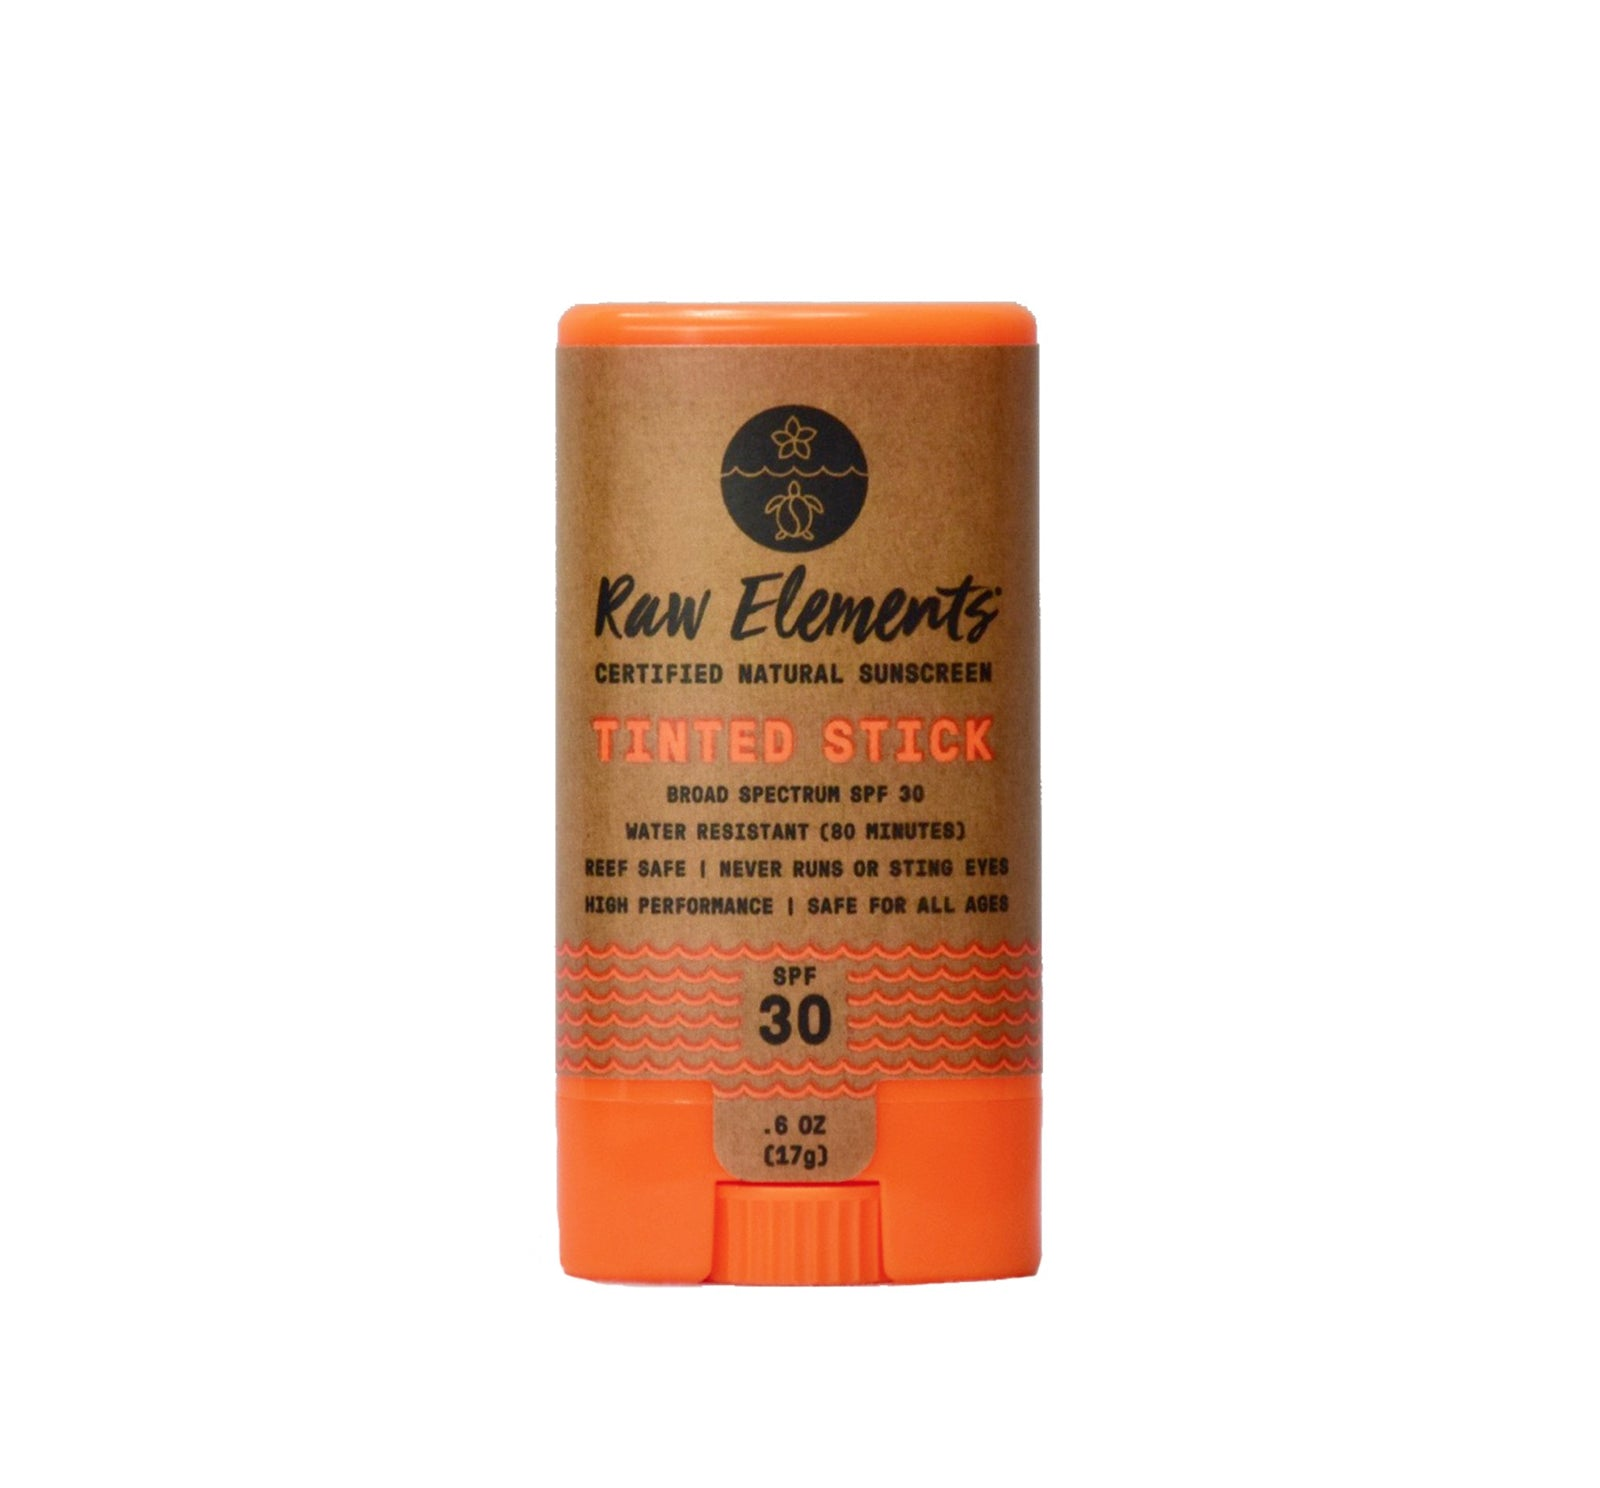 Raw Elements SPF 30 Face Stick Sunscreen - Tinted